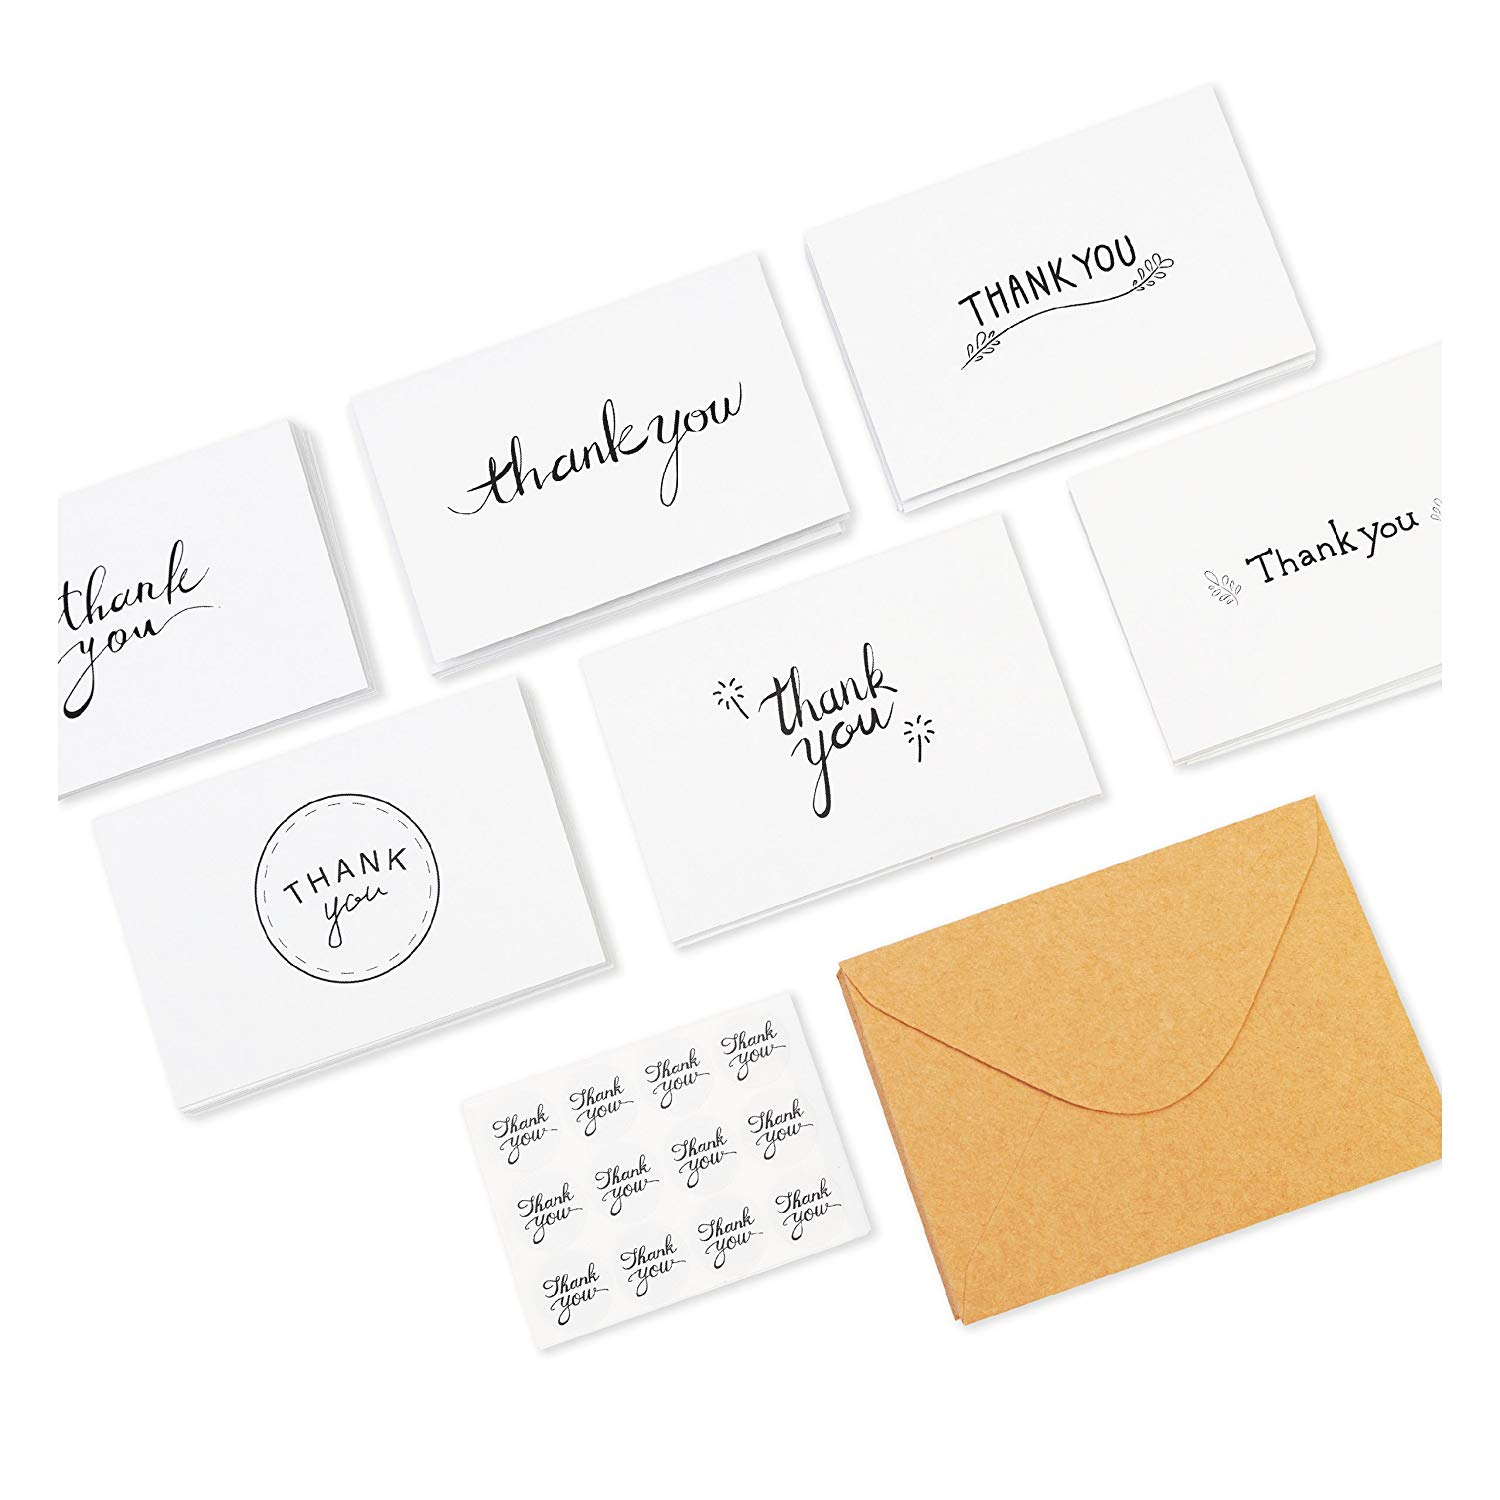 100 Cards Greeting Cards Assortment Great for Baby Showers Weddings 100 Thank You Notes with Envelopes and Sealing Stickers Letterpress Thank You Cards Birthdays Business by Krafster